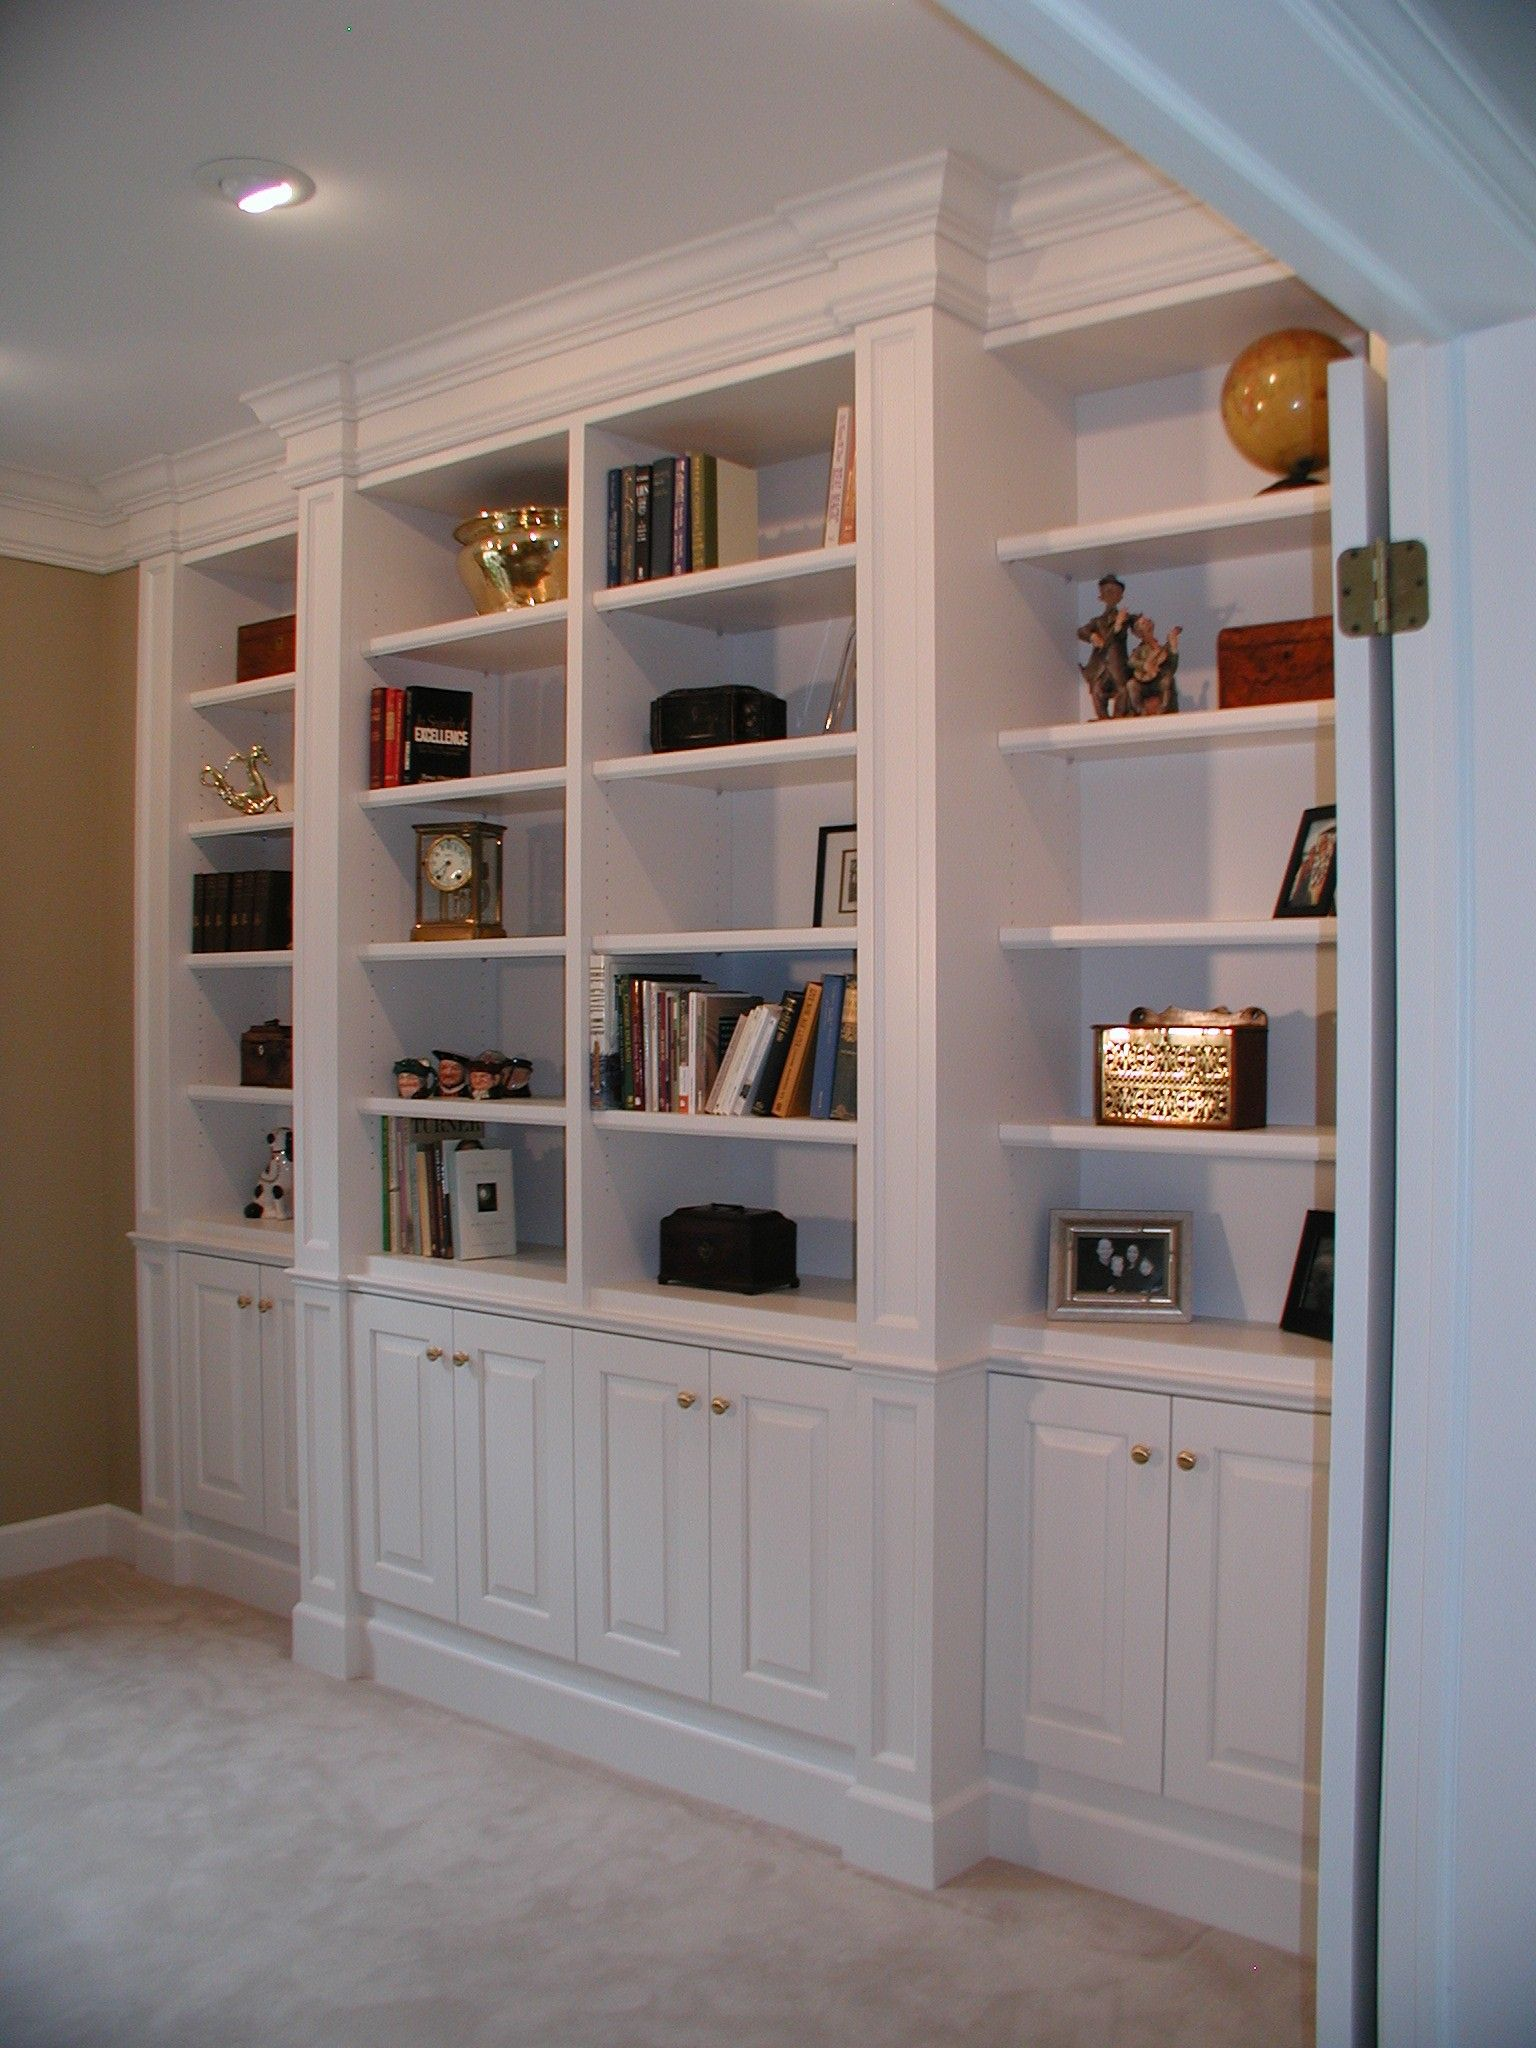 title | Built In Bookshelf Ideas